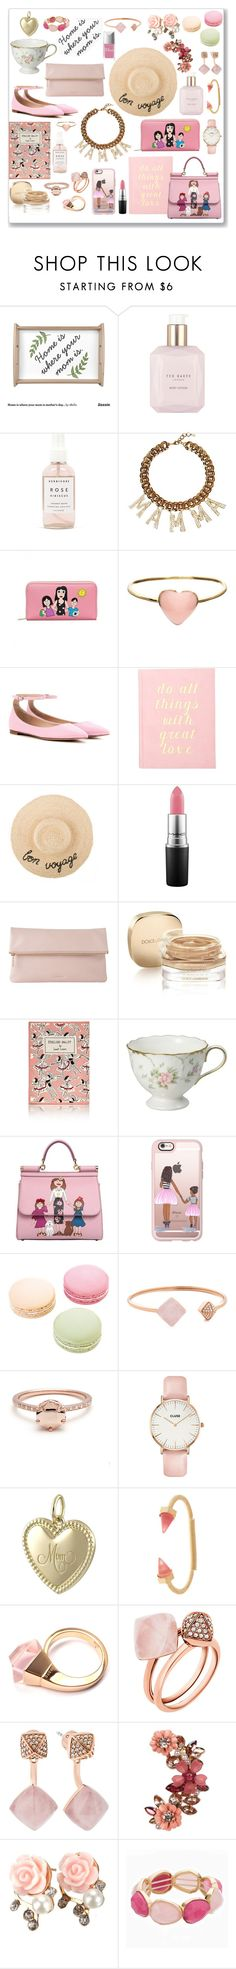 """Mother's Day pink"" by seventeene ❤ liked on Polyvore featuring Ted Baker, Herbivore Botanicals, Dolce&Gabbana, Orelia, Gianvito Rossi, MAC Cosmetics, Whistles, Olympia Le-Tan, Casetify and Ladurée"